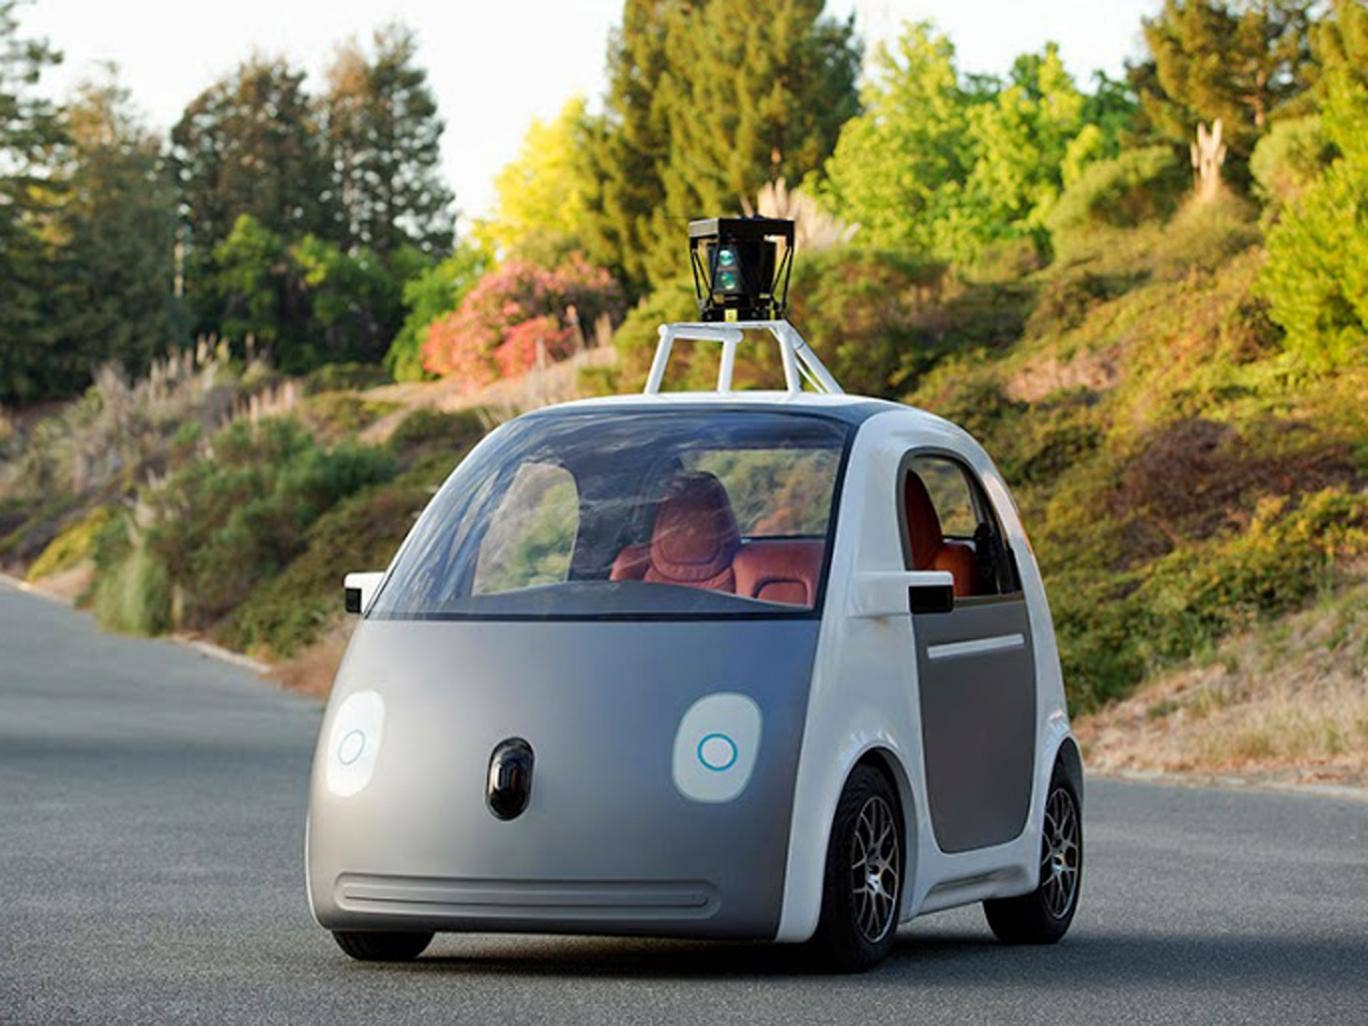 An of an early version of Google's prototype vehicle